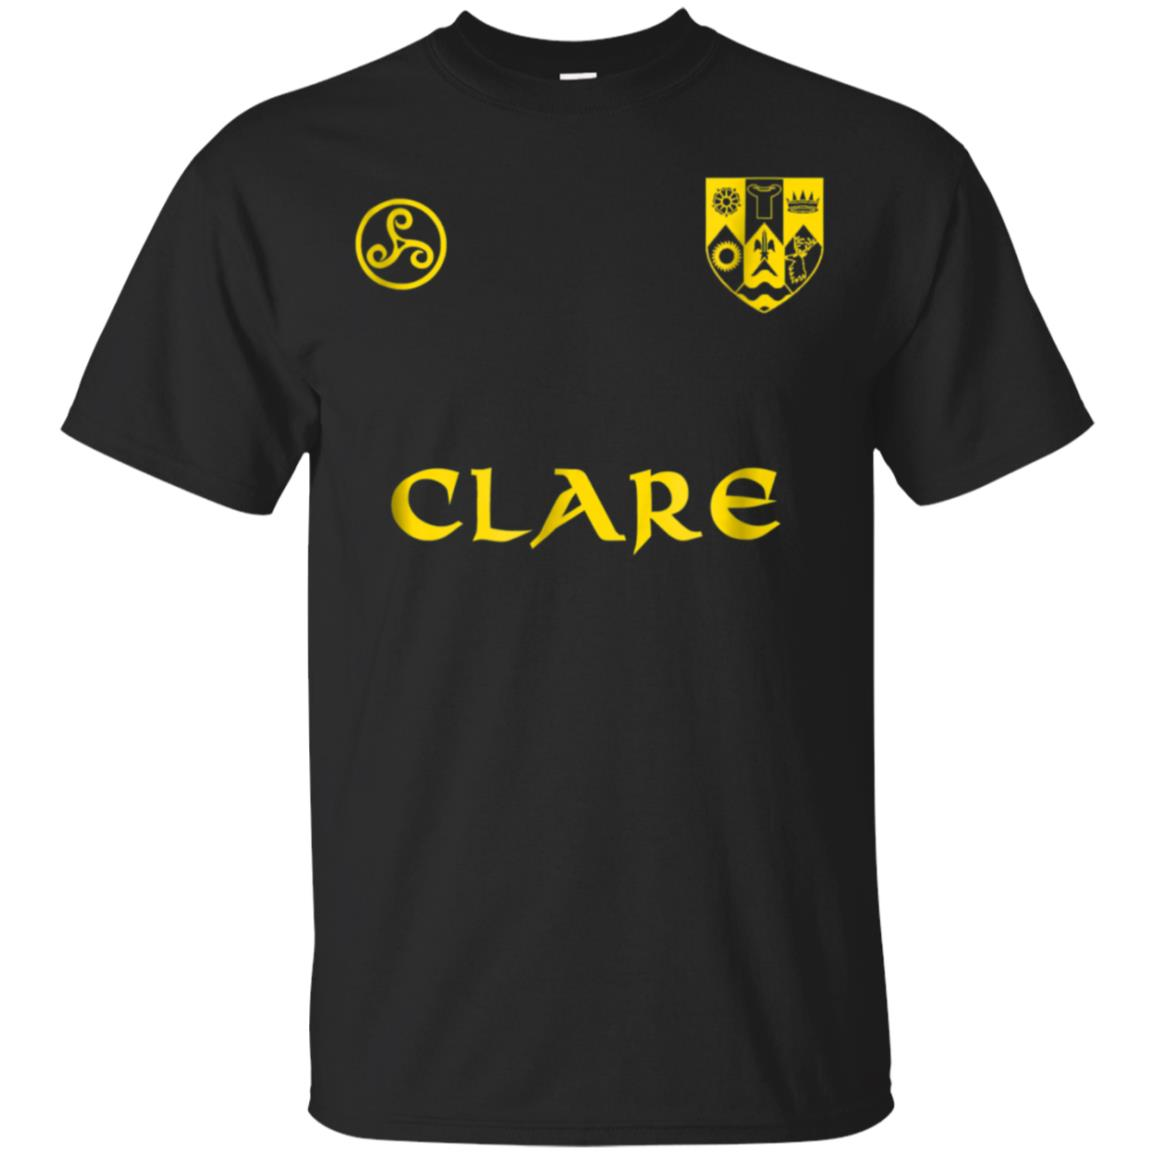 Clare Football & Hurling Jersey 99promocode